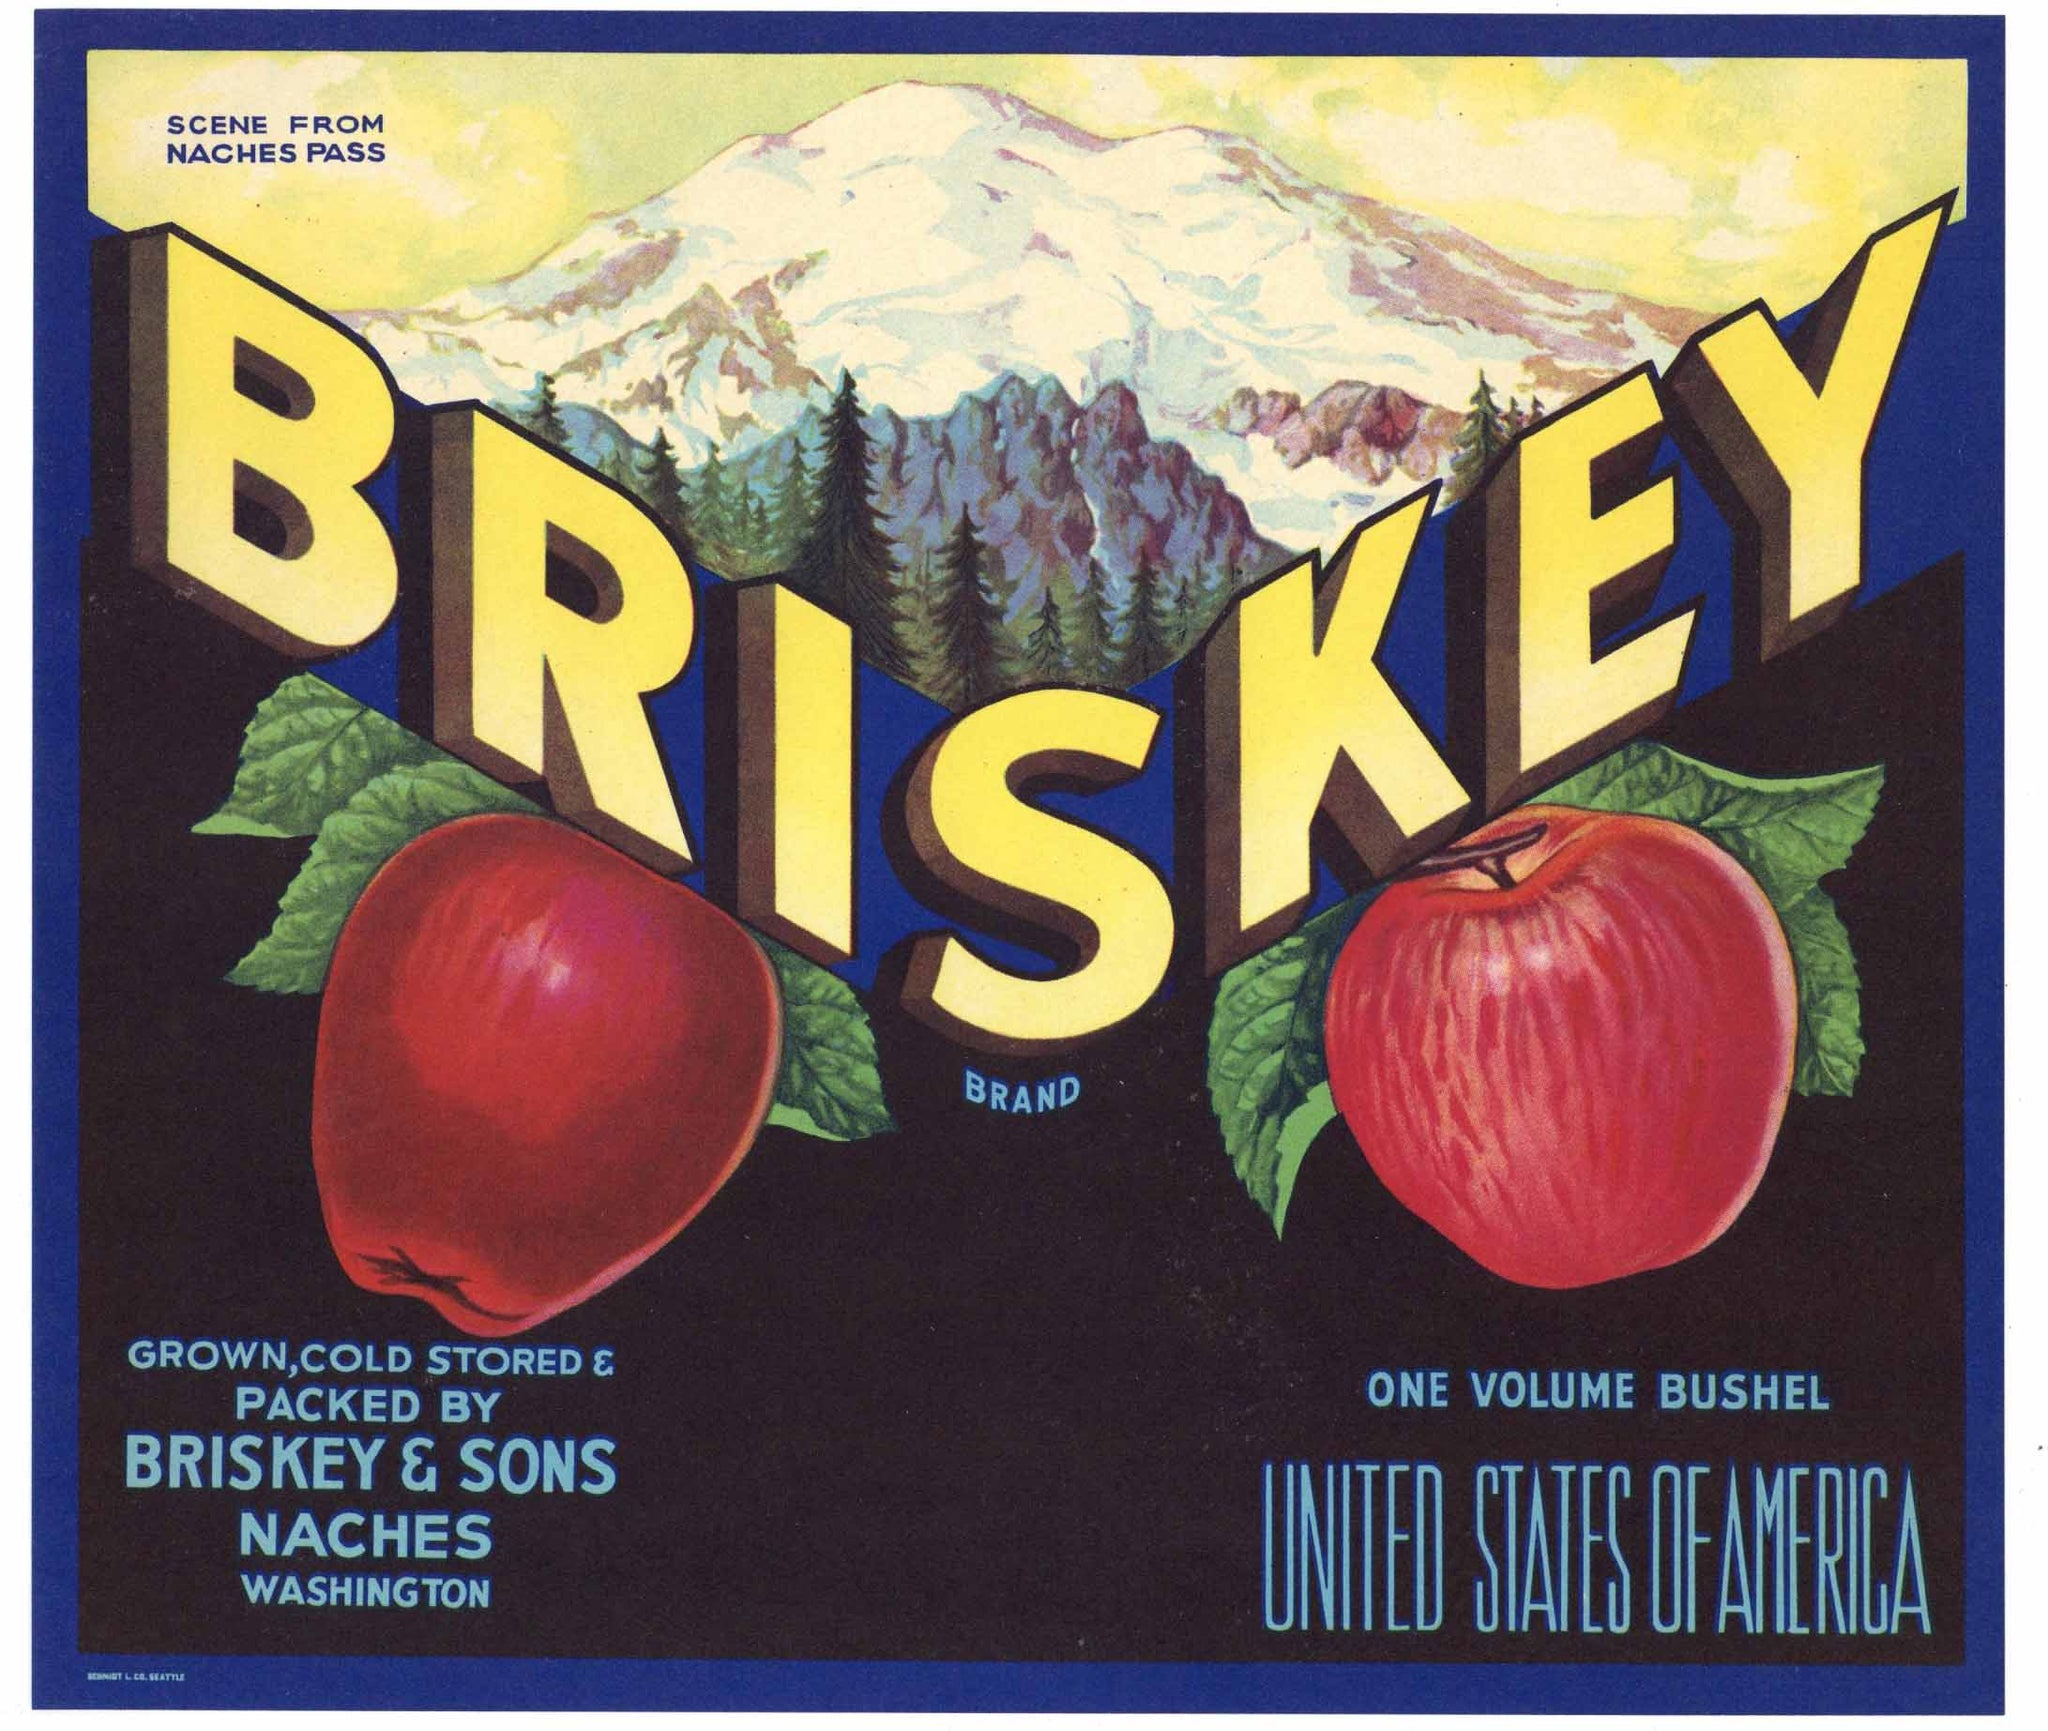 Briskey Brand Vintage Naches Washington Apple Crate Label